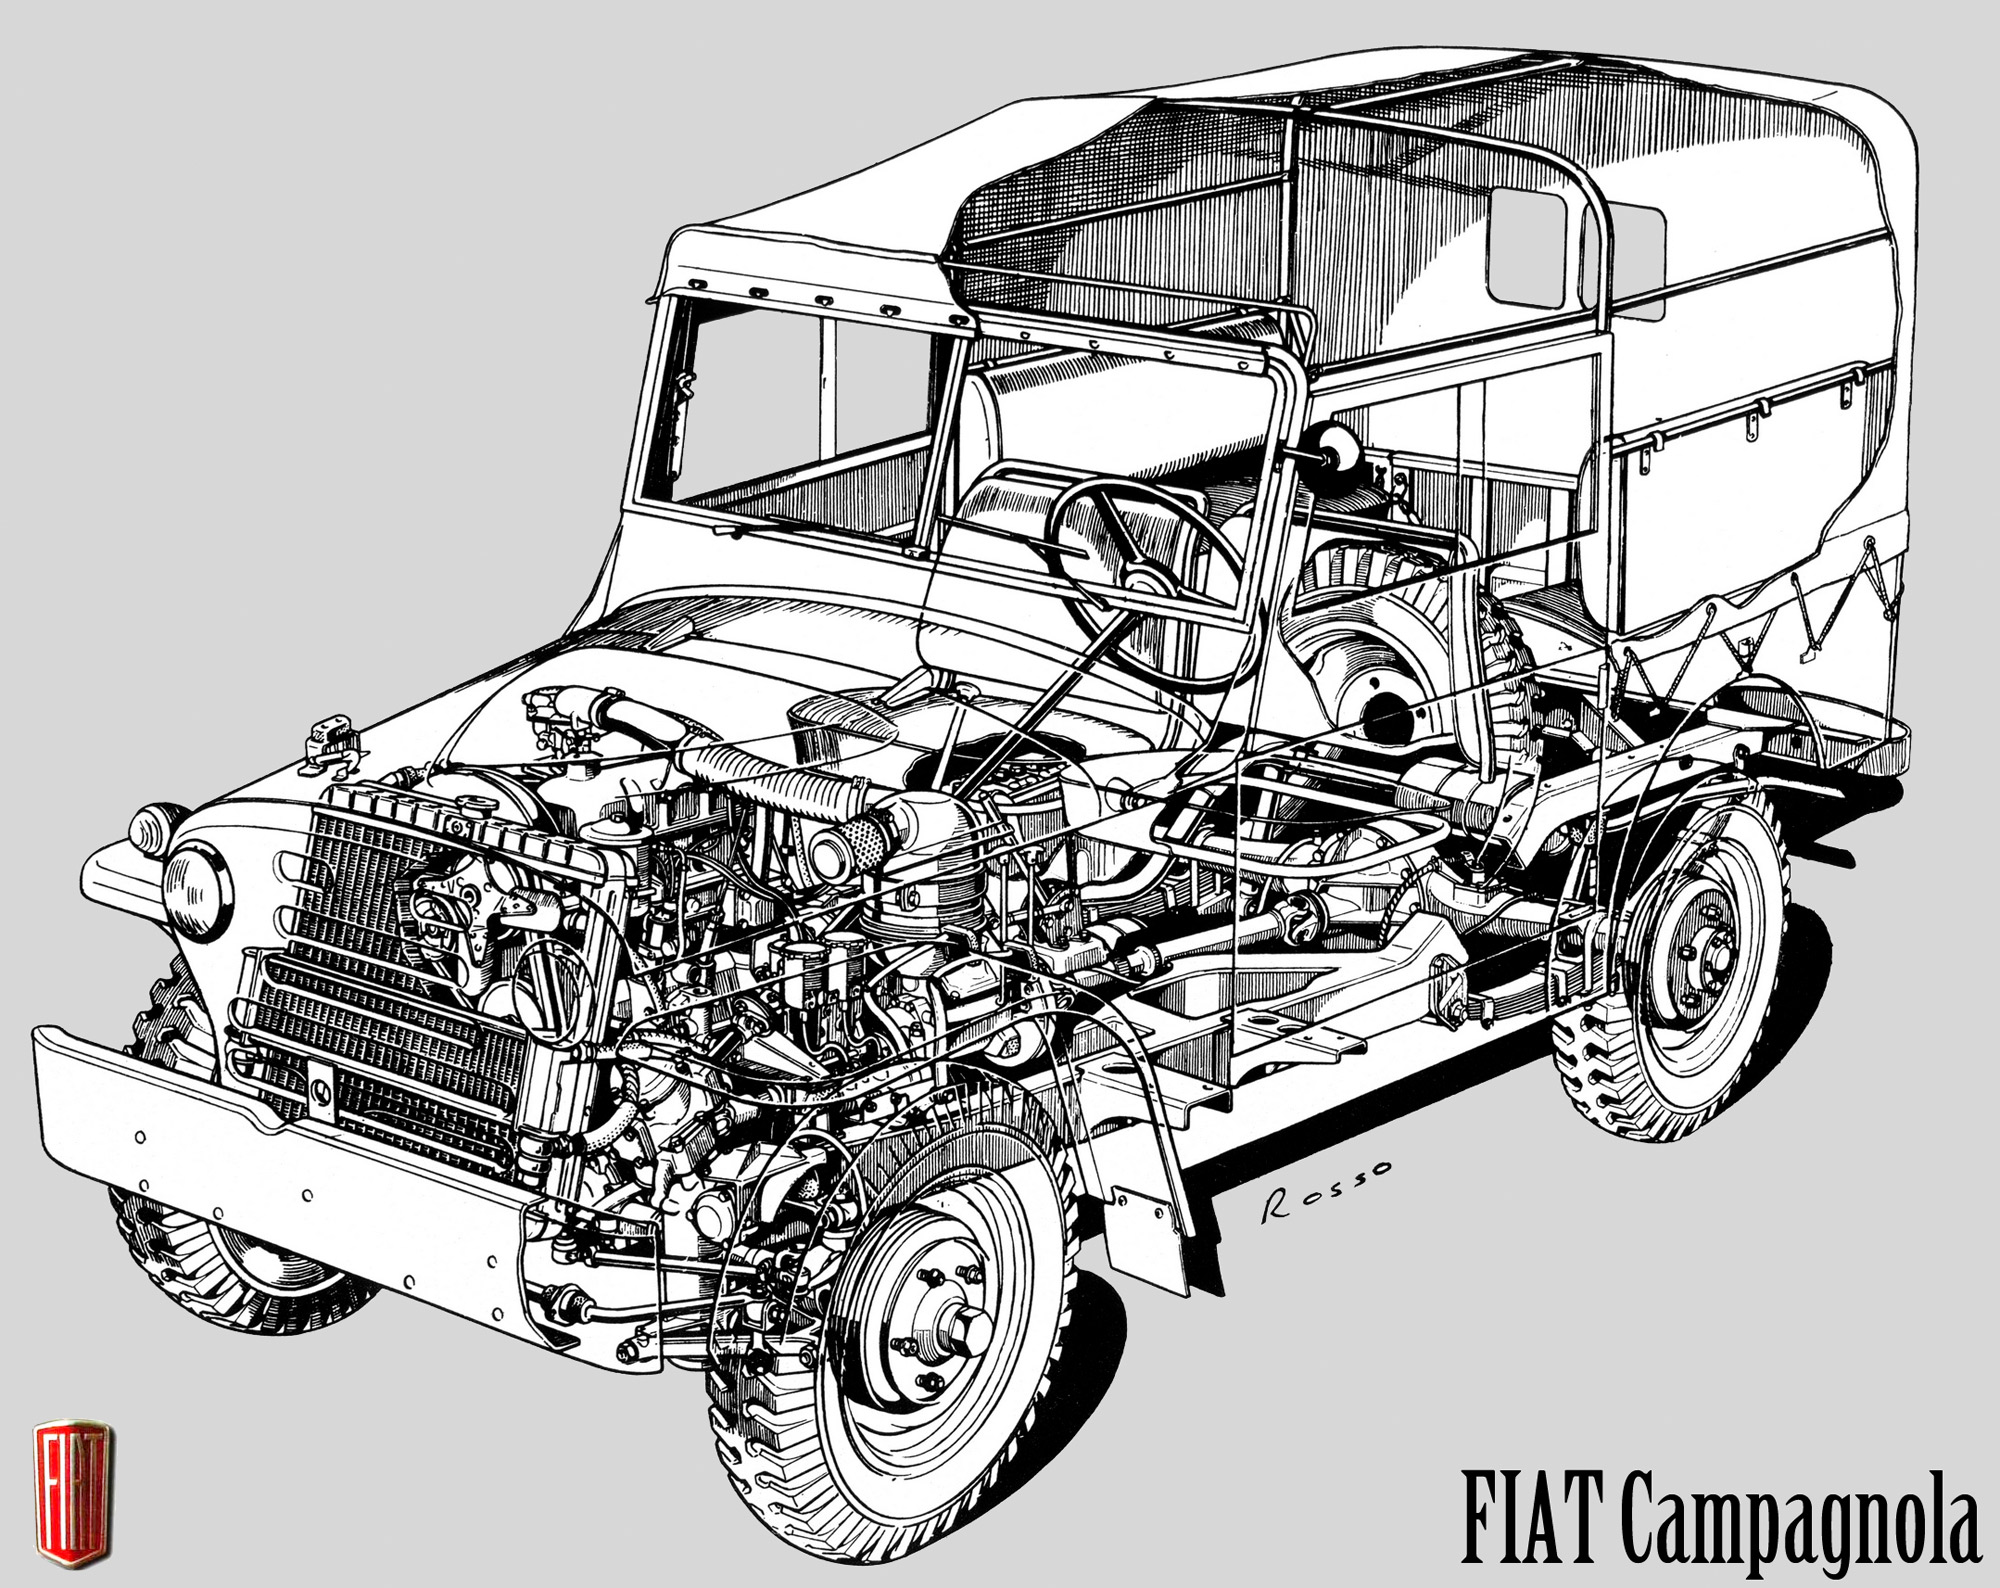 Pretty much a cross between the US Jeep with some British Land Rover thrown in the Fiat 1101A Campagnola is one sweet little four wheel drive. (Picture by Franco Rosso courtesy sobchak.files).